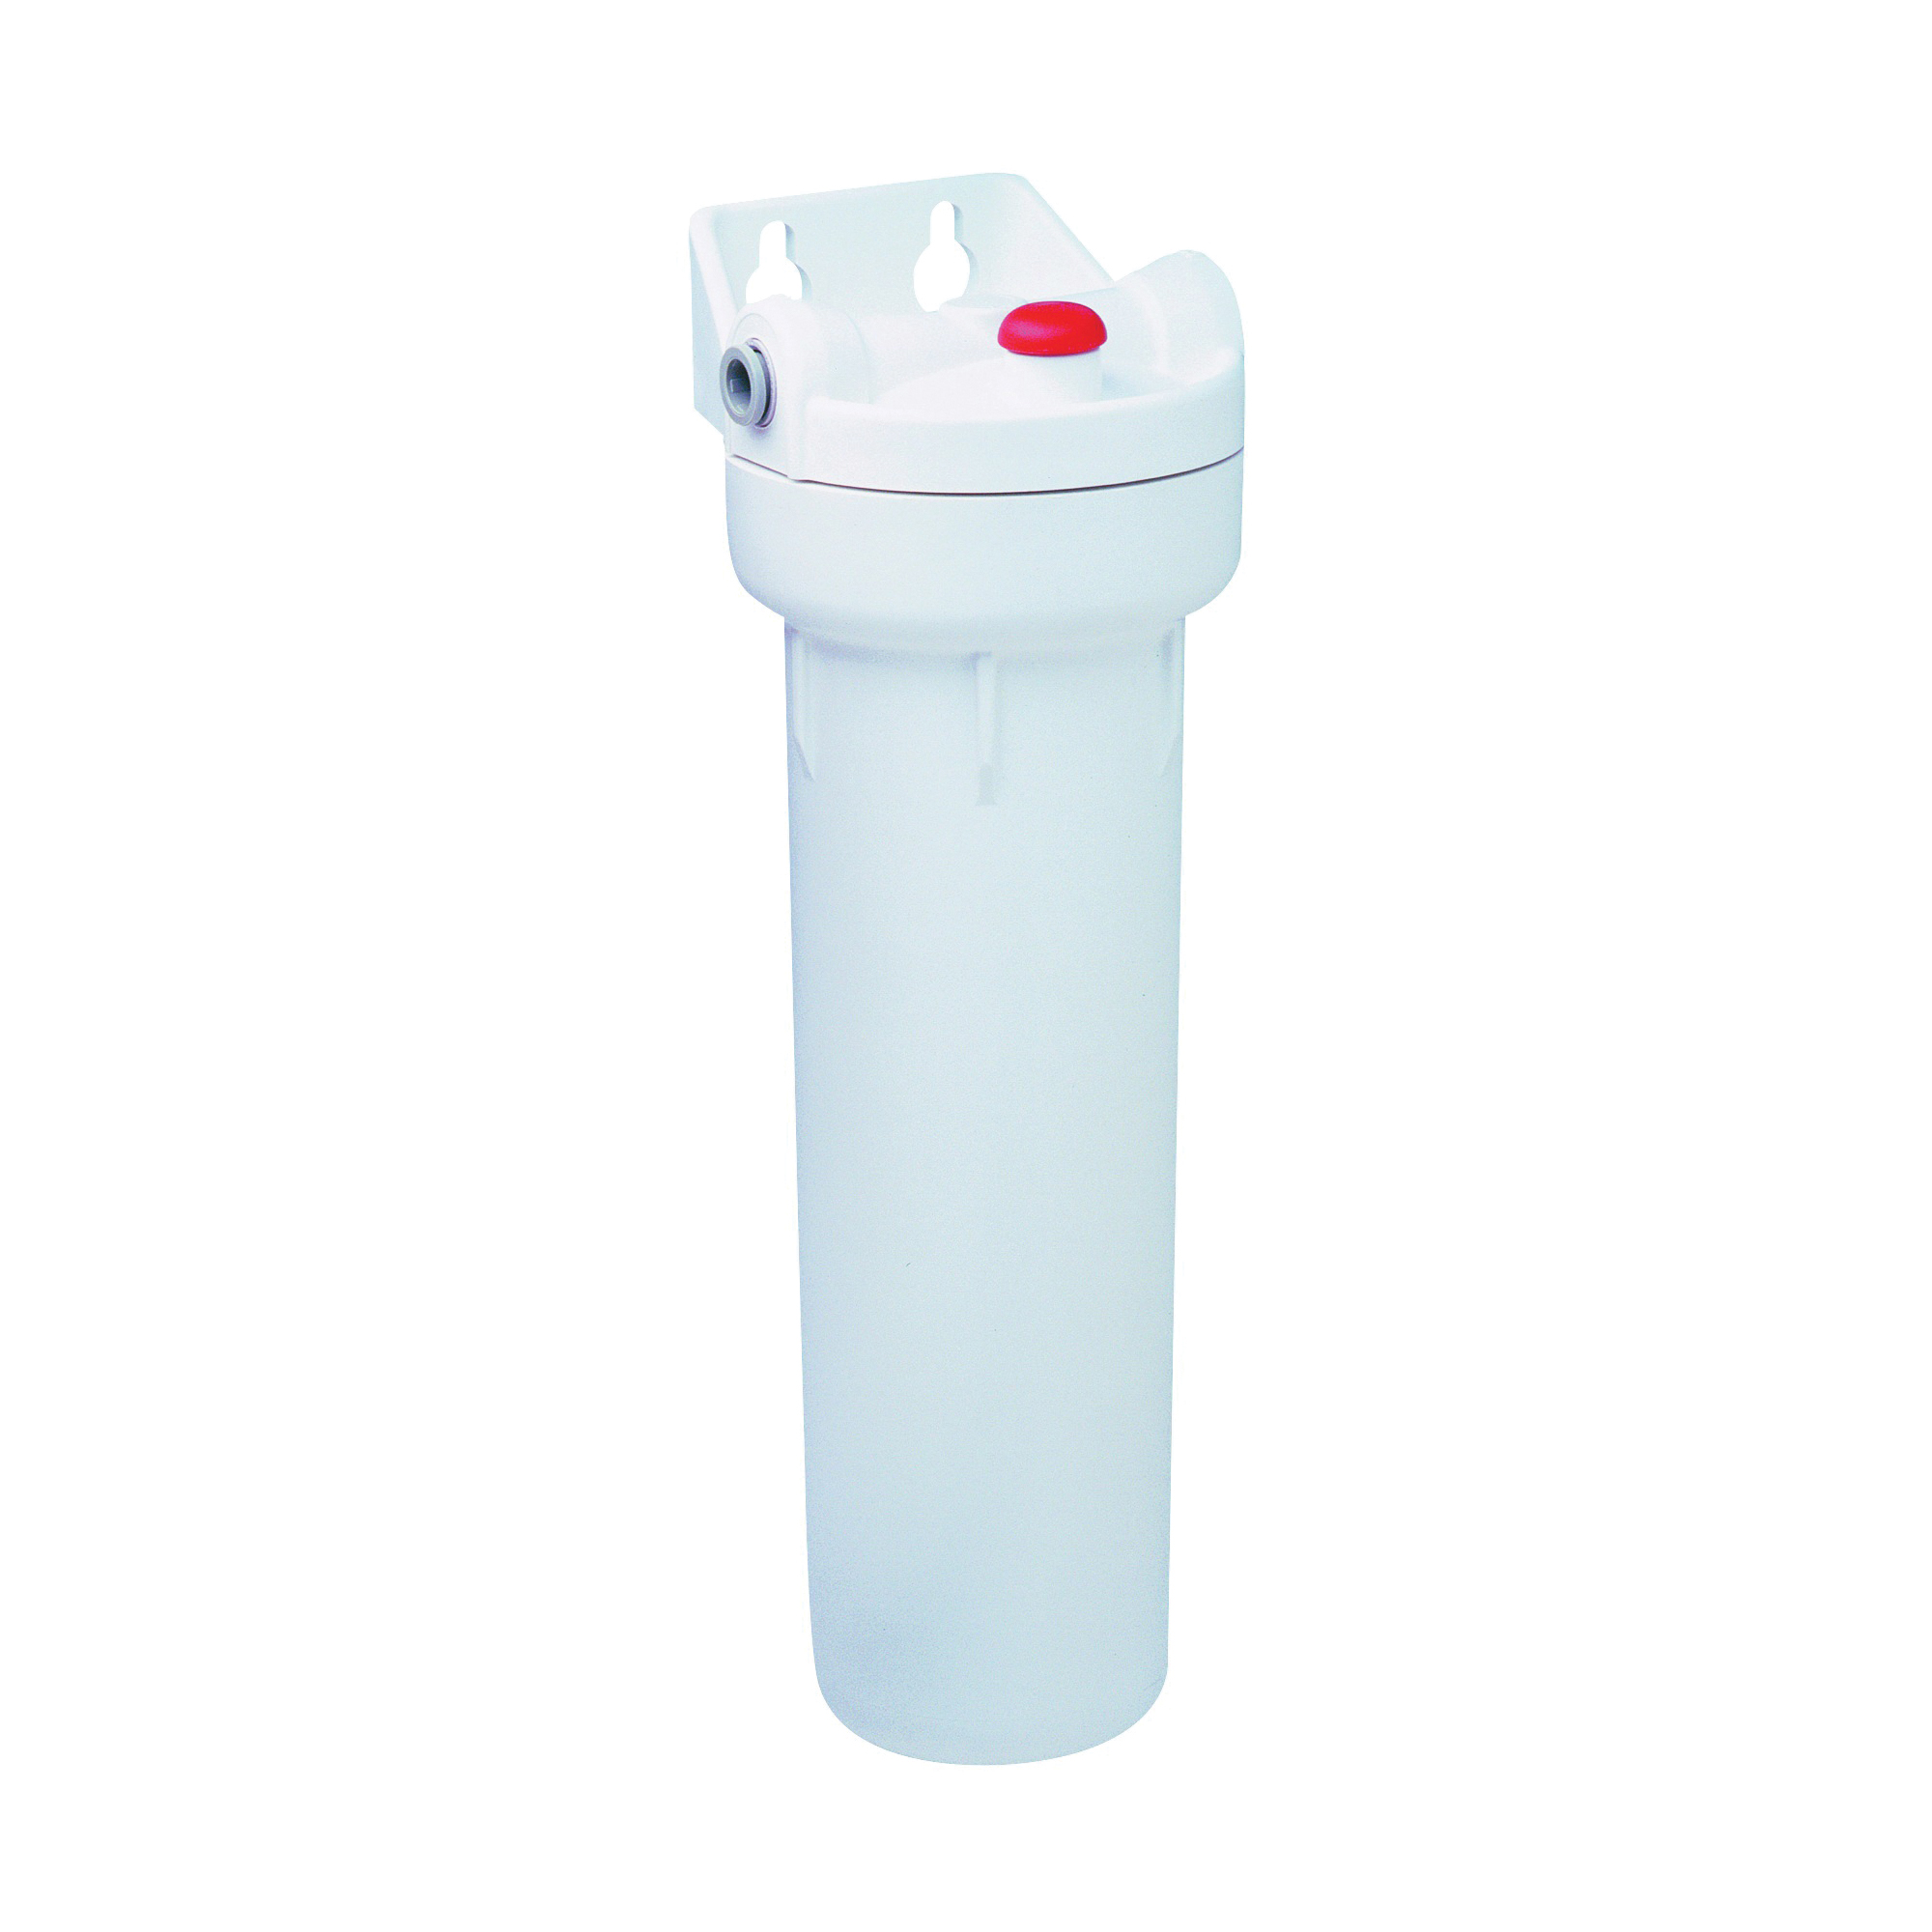 Picture of Culligan US-600A Under Sink Filter System, 1000 gal Capacity, 1 gpm